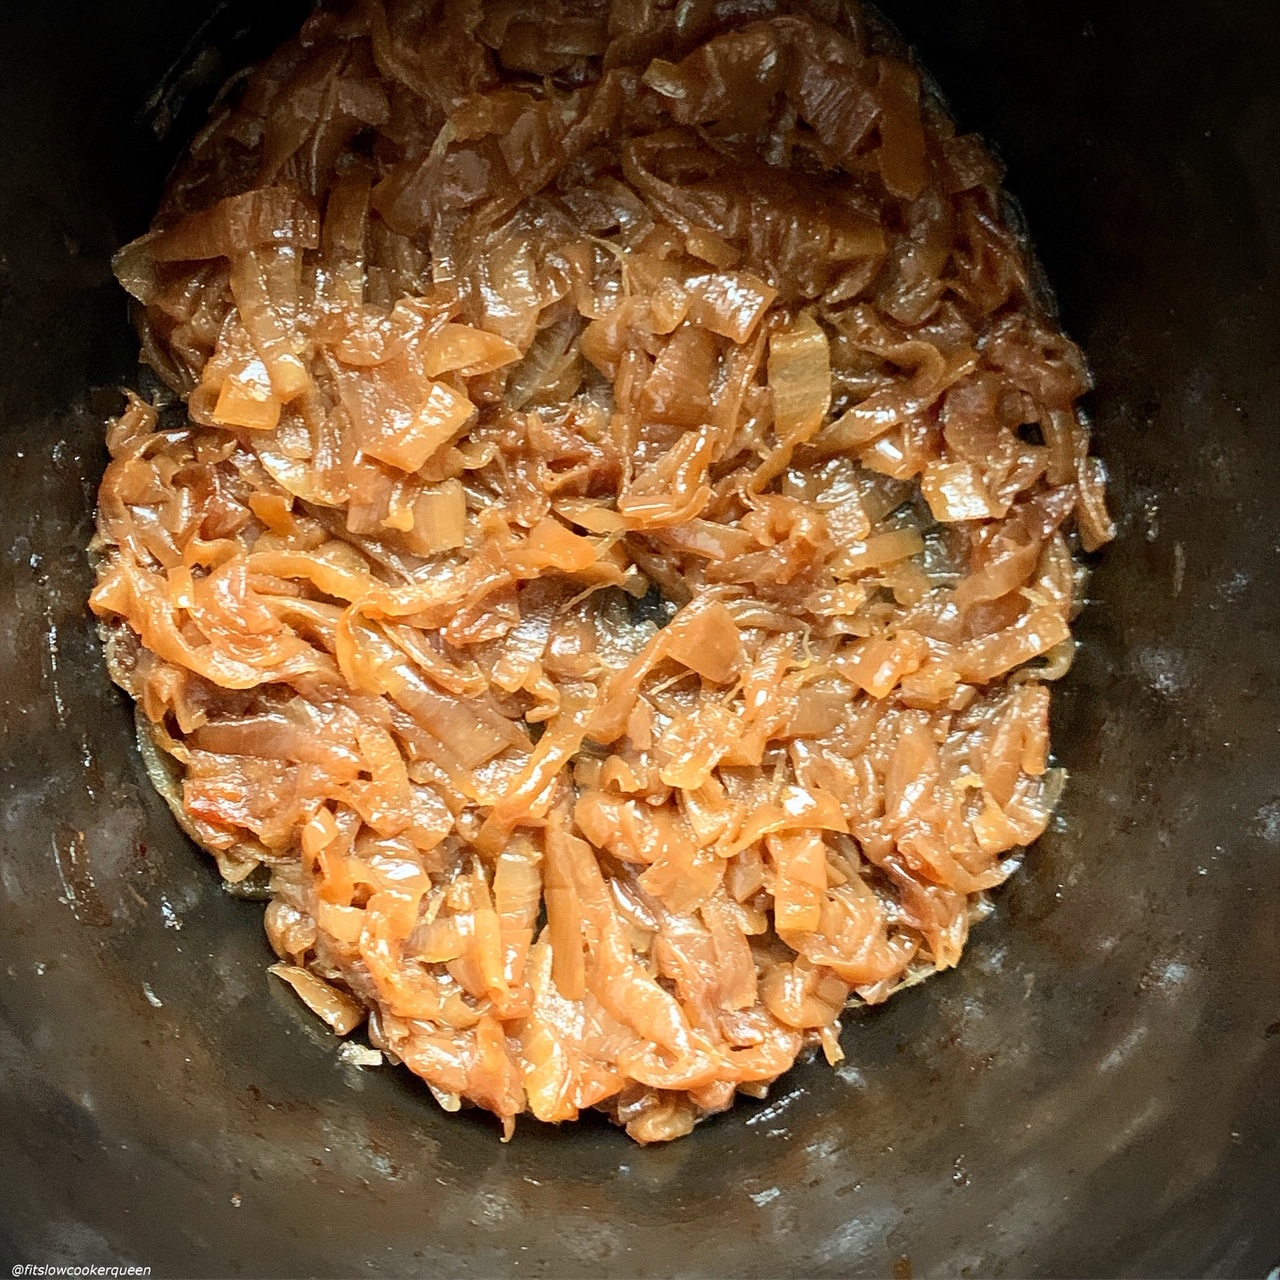 cooked caramelized onions in the slow cooker